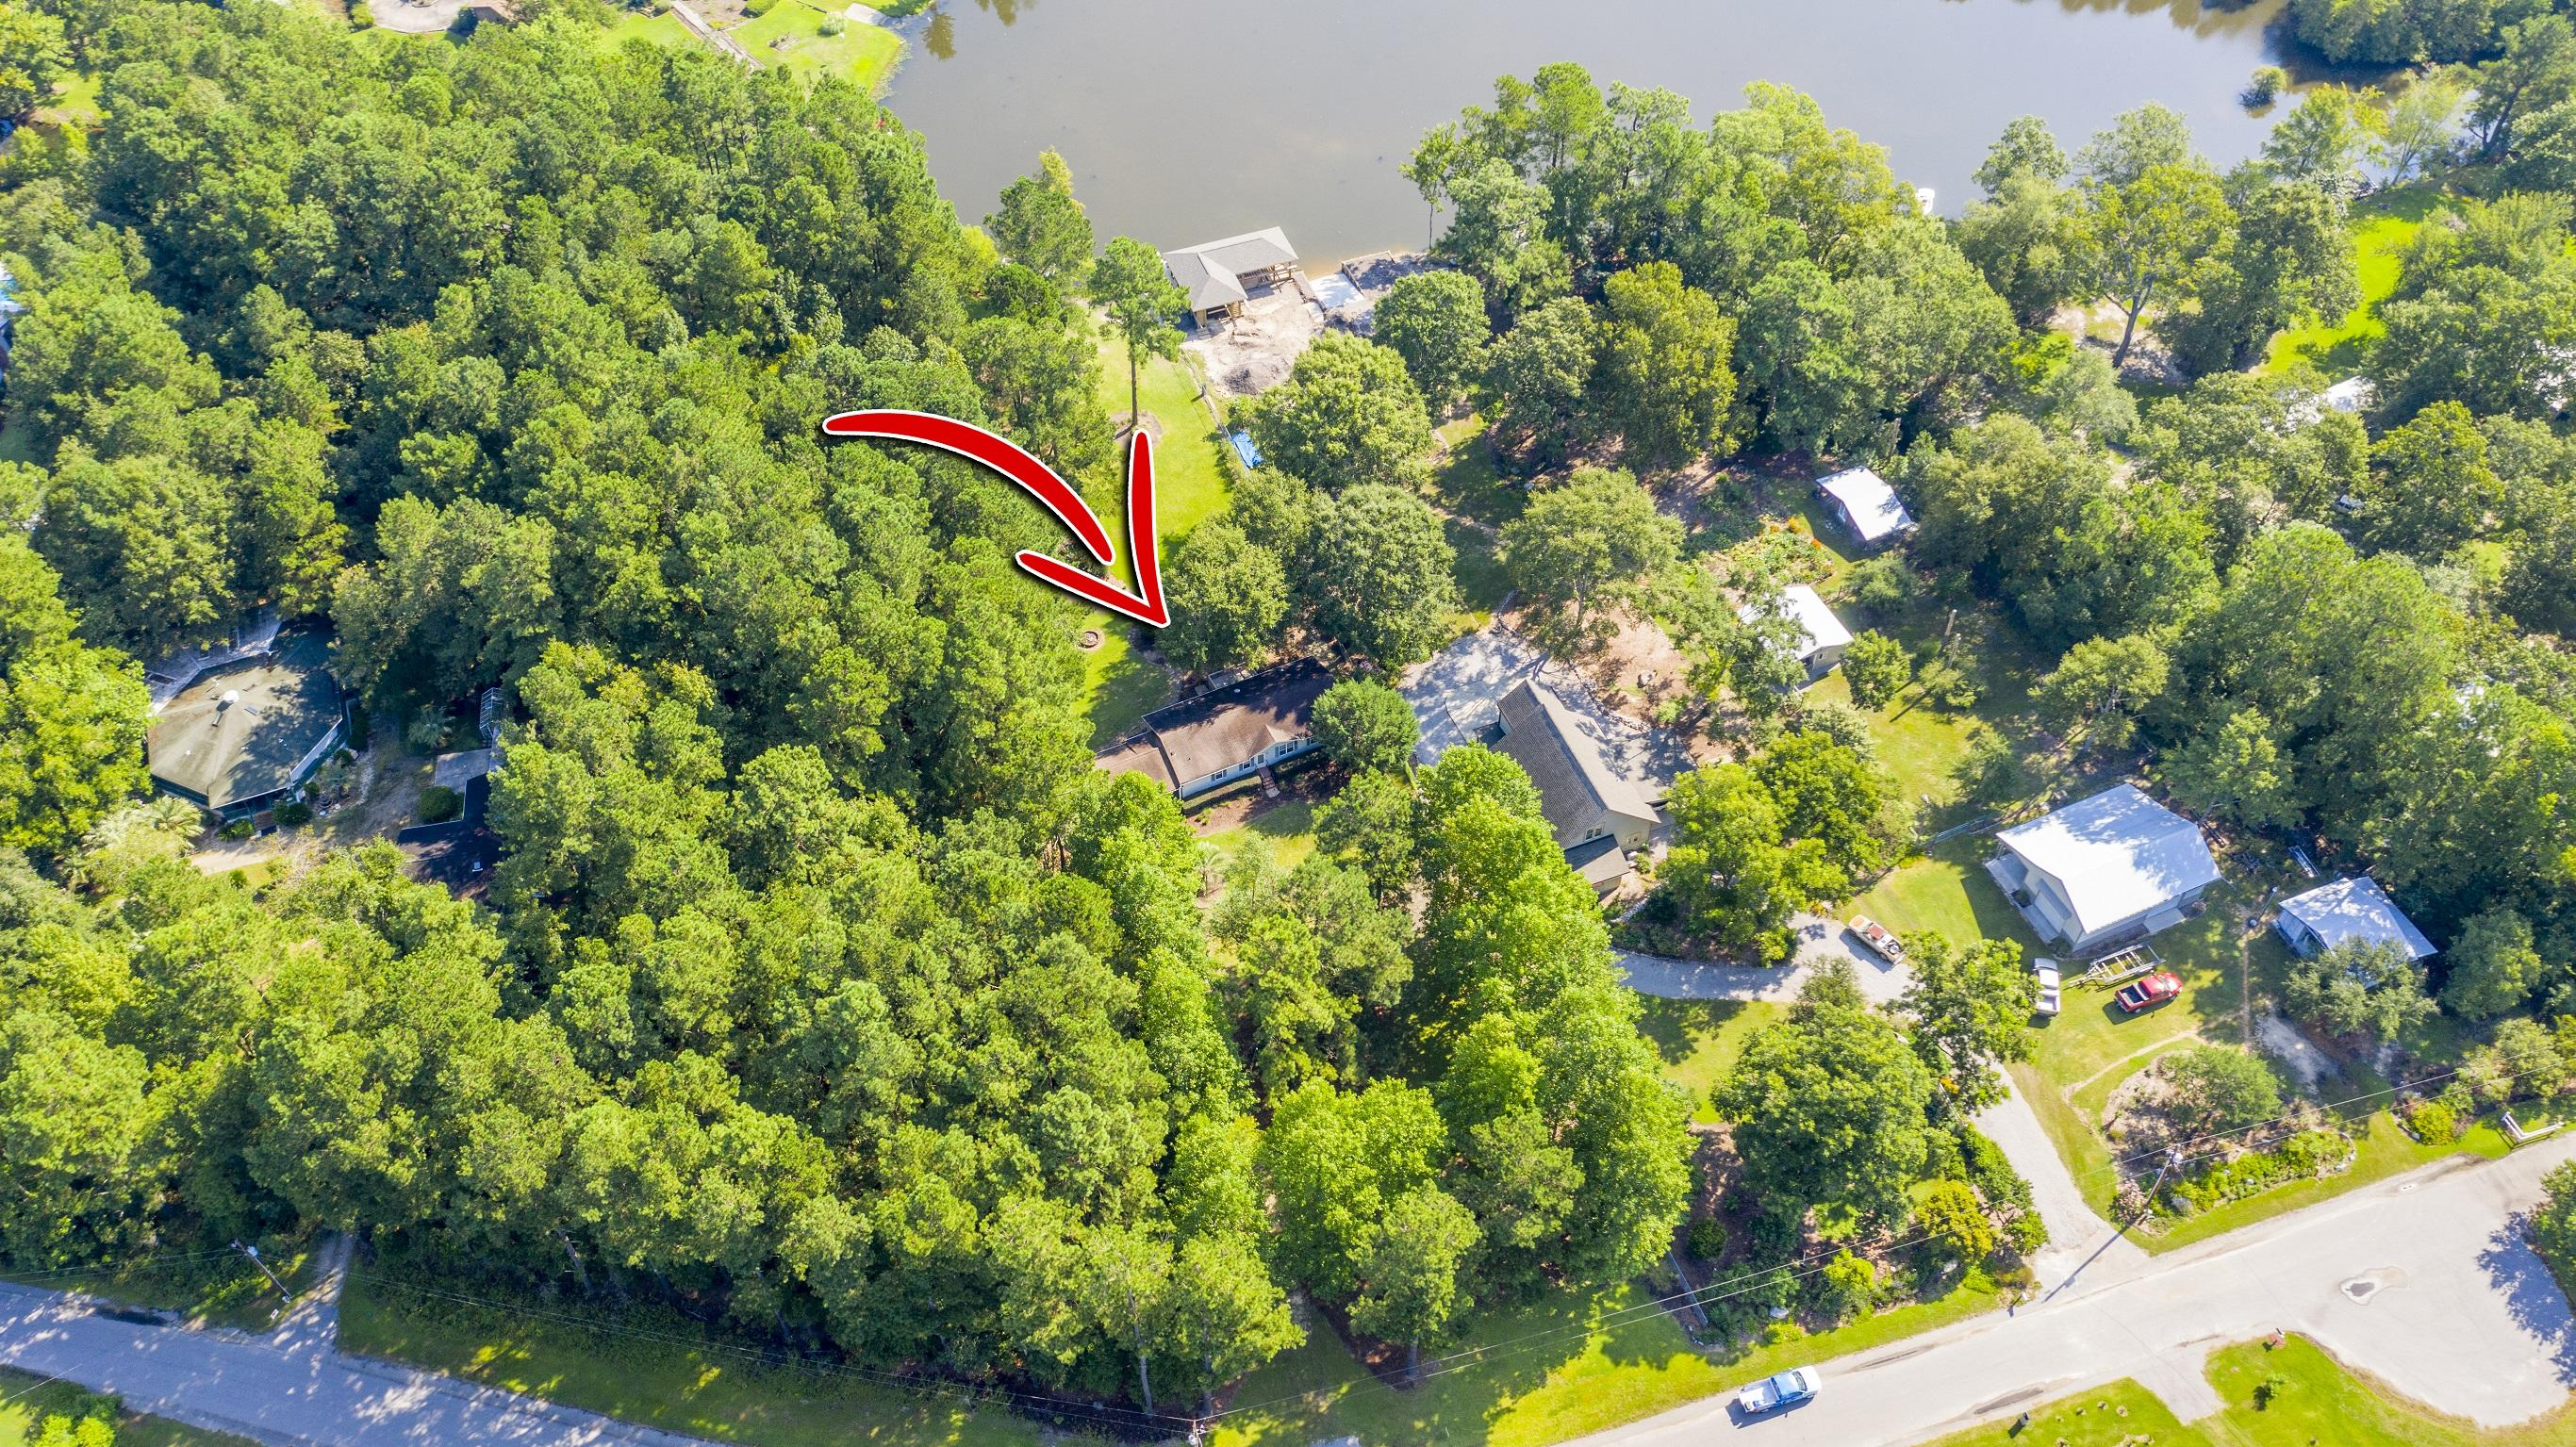 Plantation II Homes For Sale - 155 Meredith, Eutawville, SC - 1